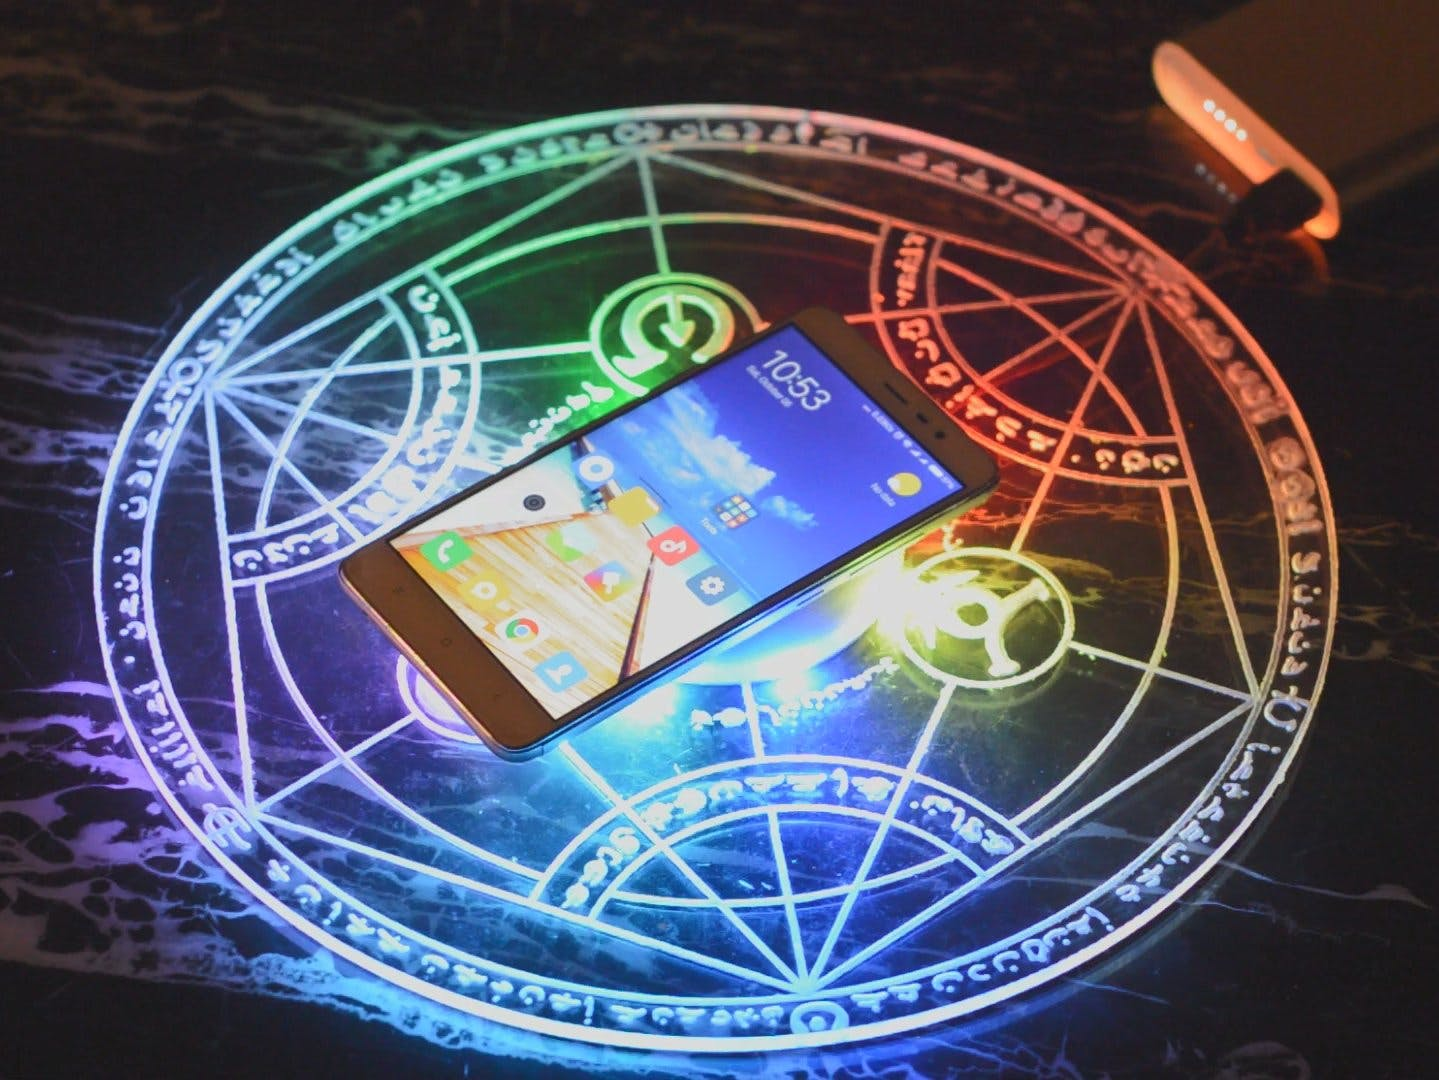 Wireless Charger With A Sound Sensing Sparkle